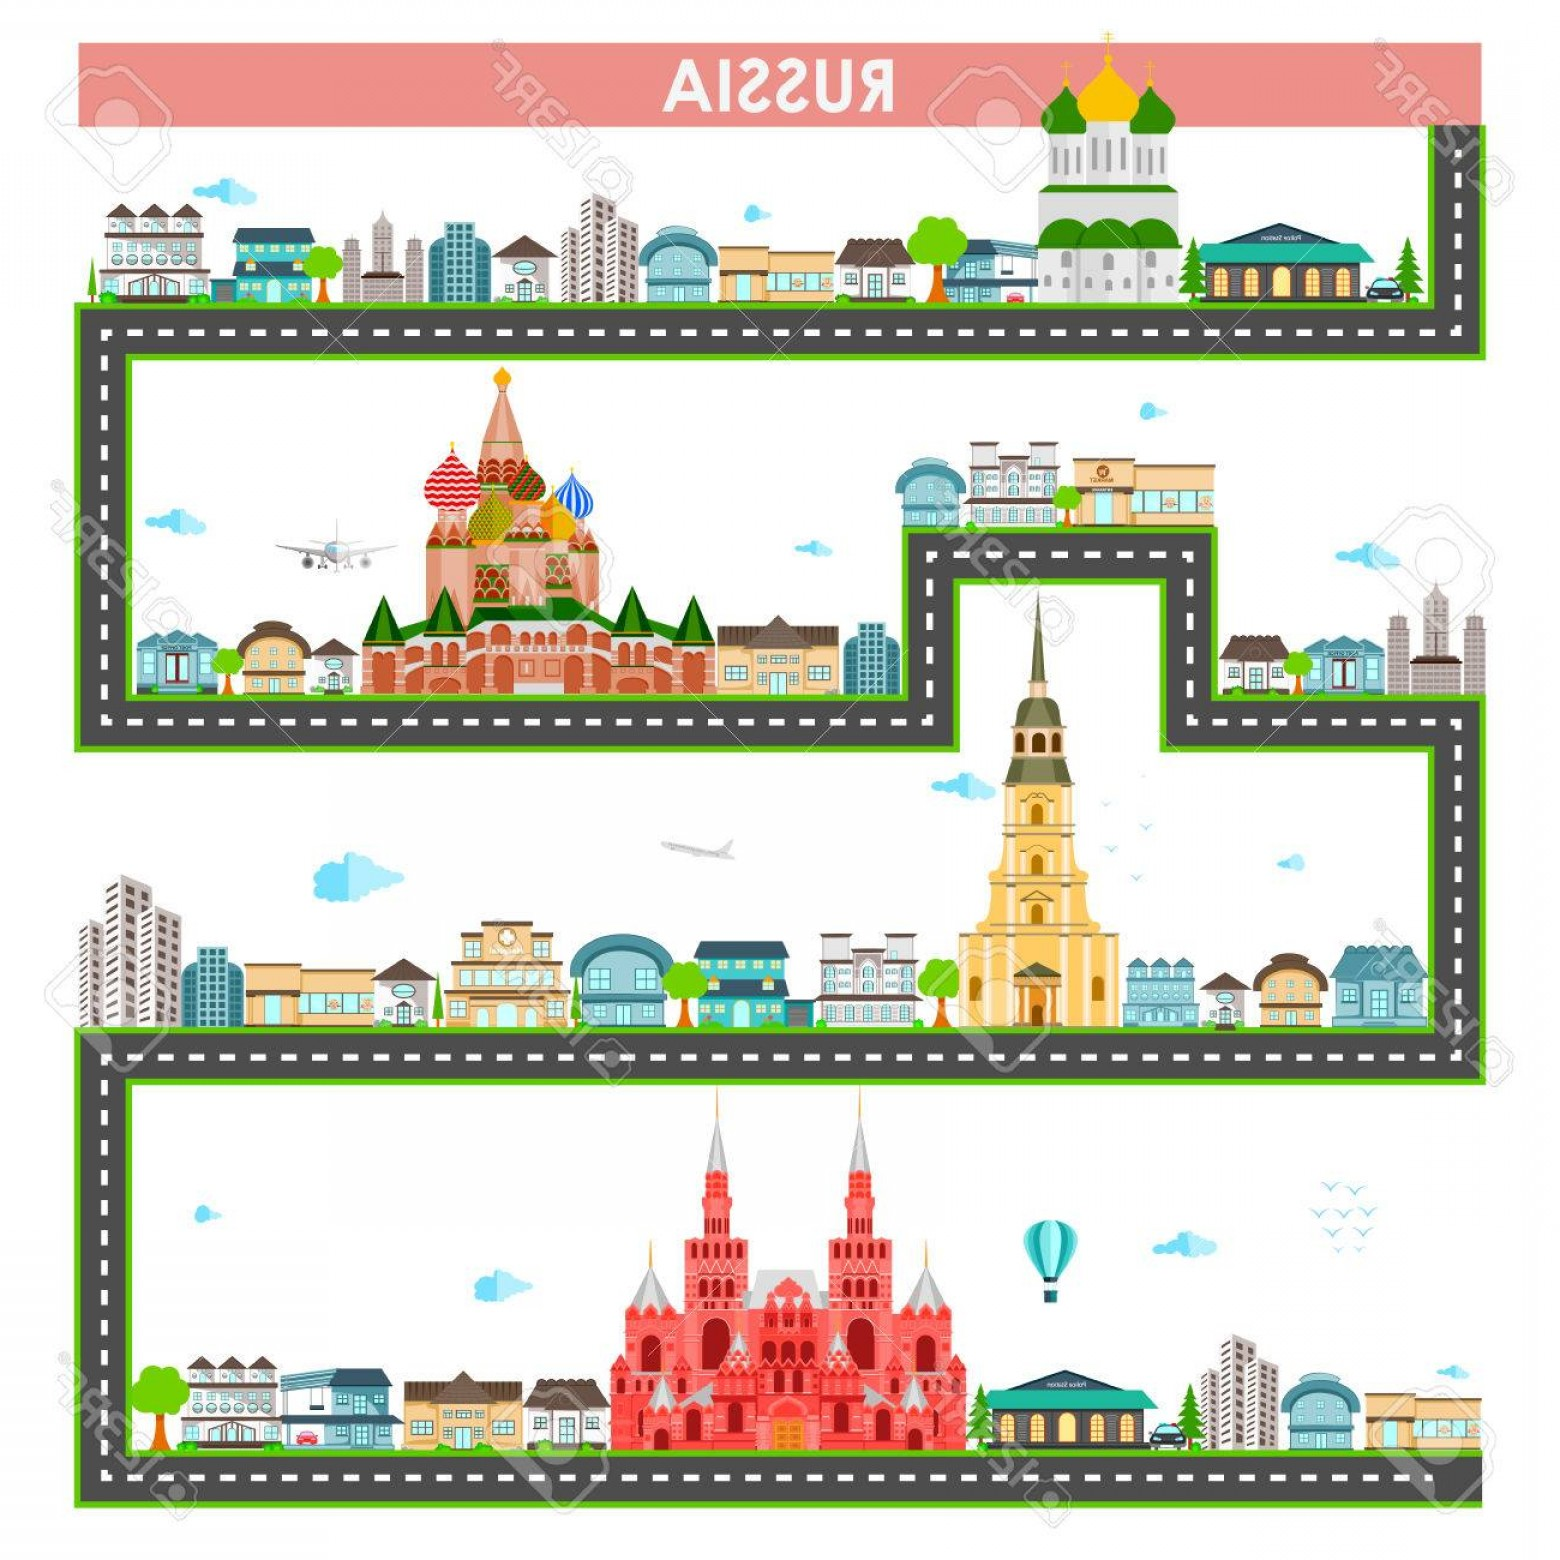 Famous Easy Vectors: Photostock Vector Easy To Edit Vector Illustration Of Cityscape With Famous Monument And Building Of Russia